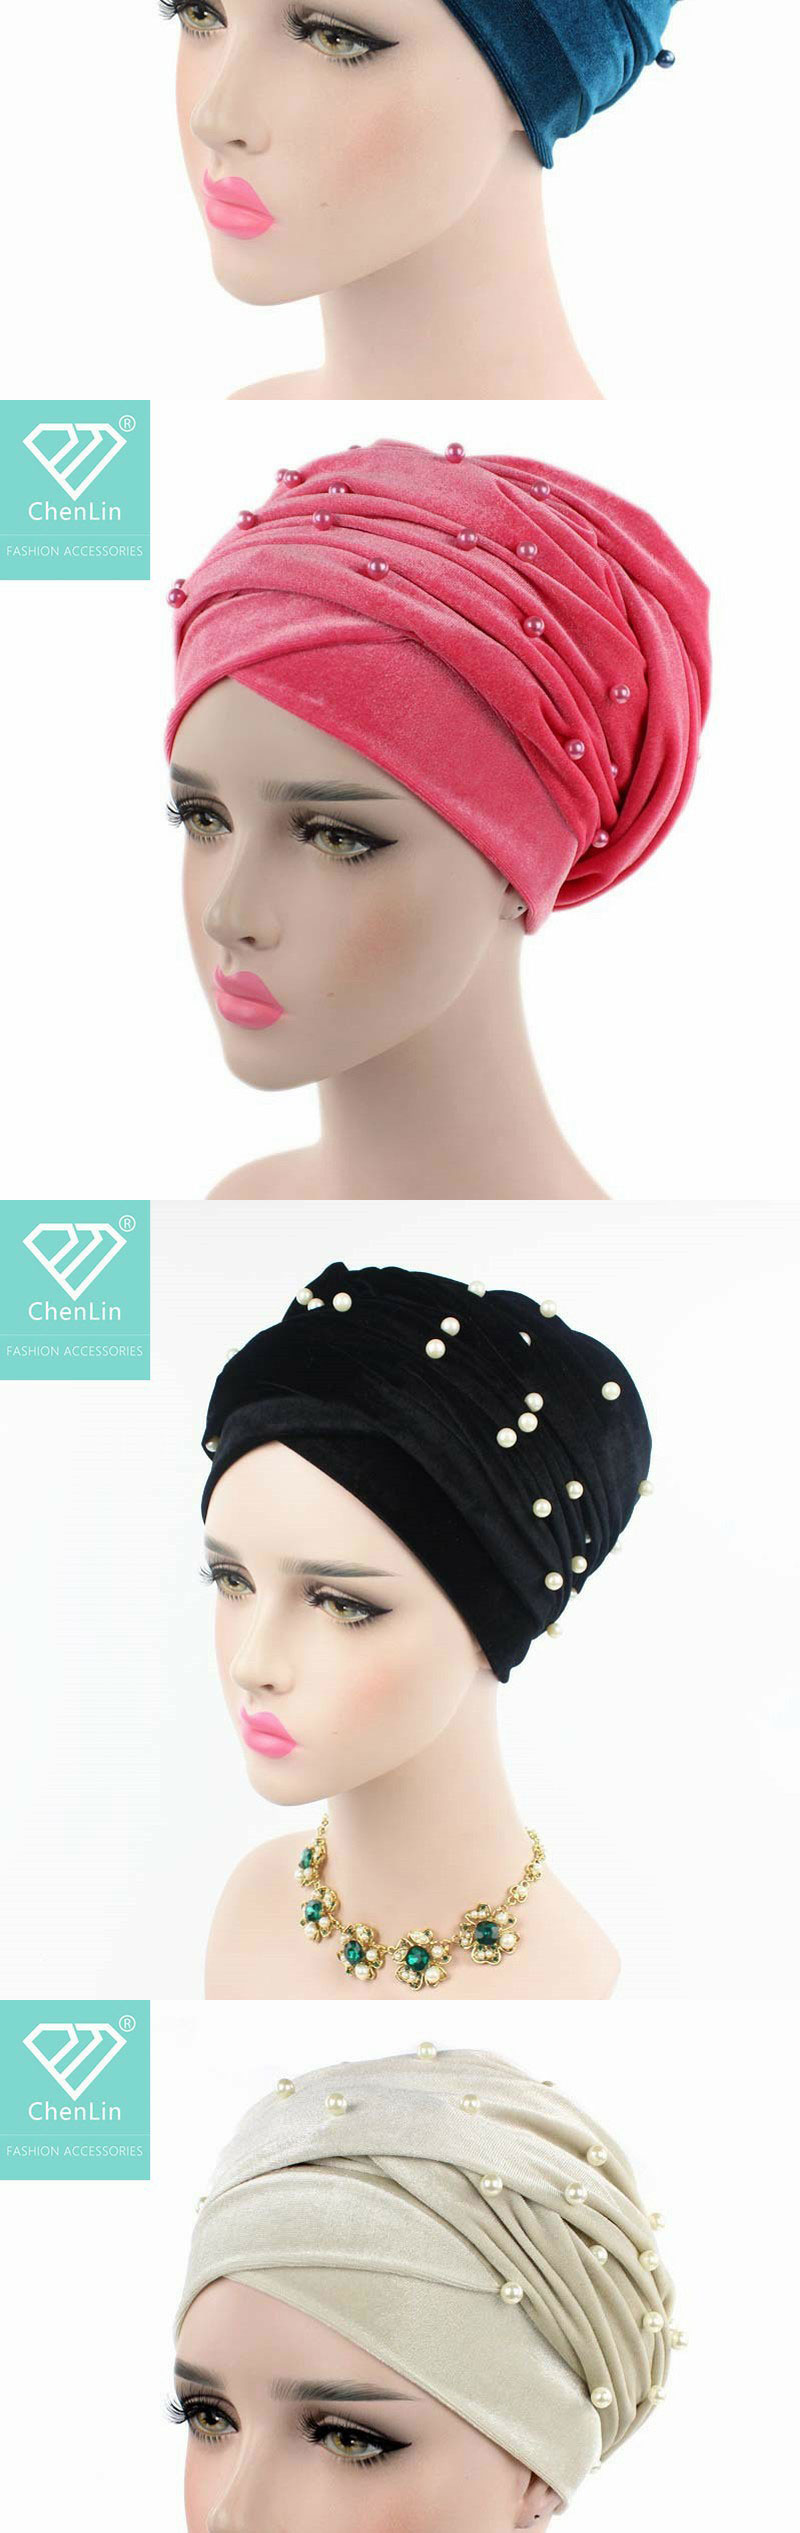 2020 newest popular suede turbans with pearls  Long velvet beaded hijab turbans women headwear turbans for arab women